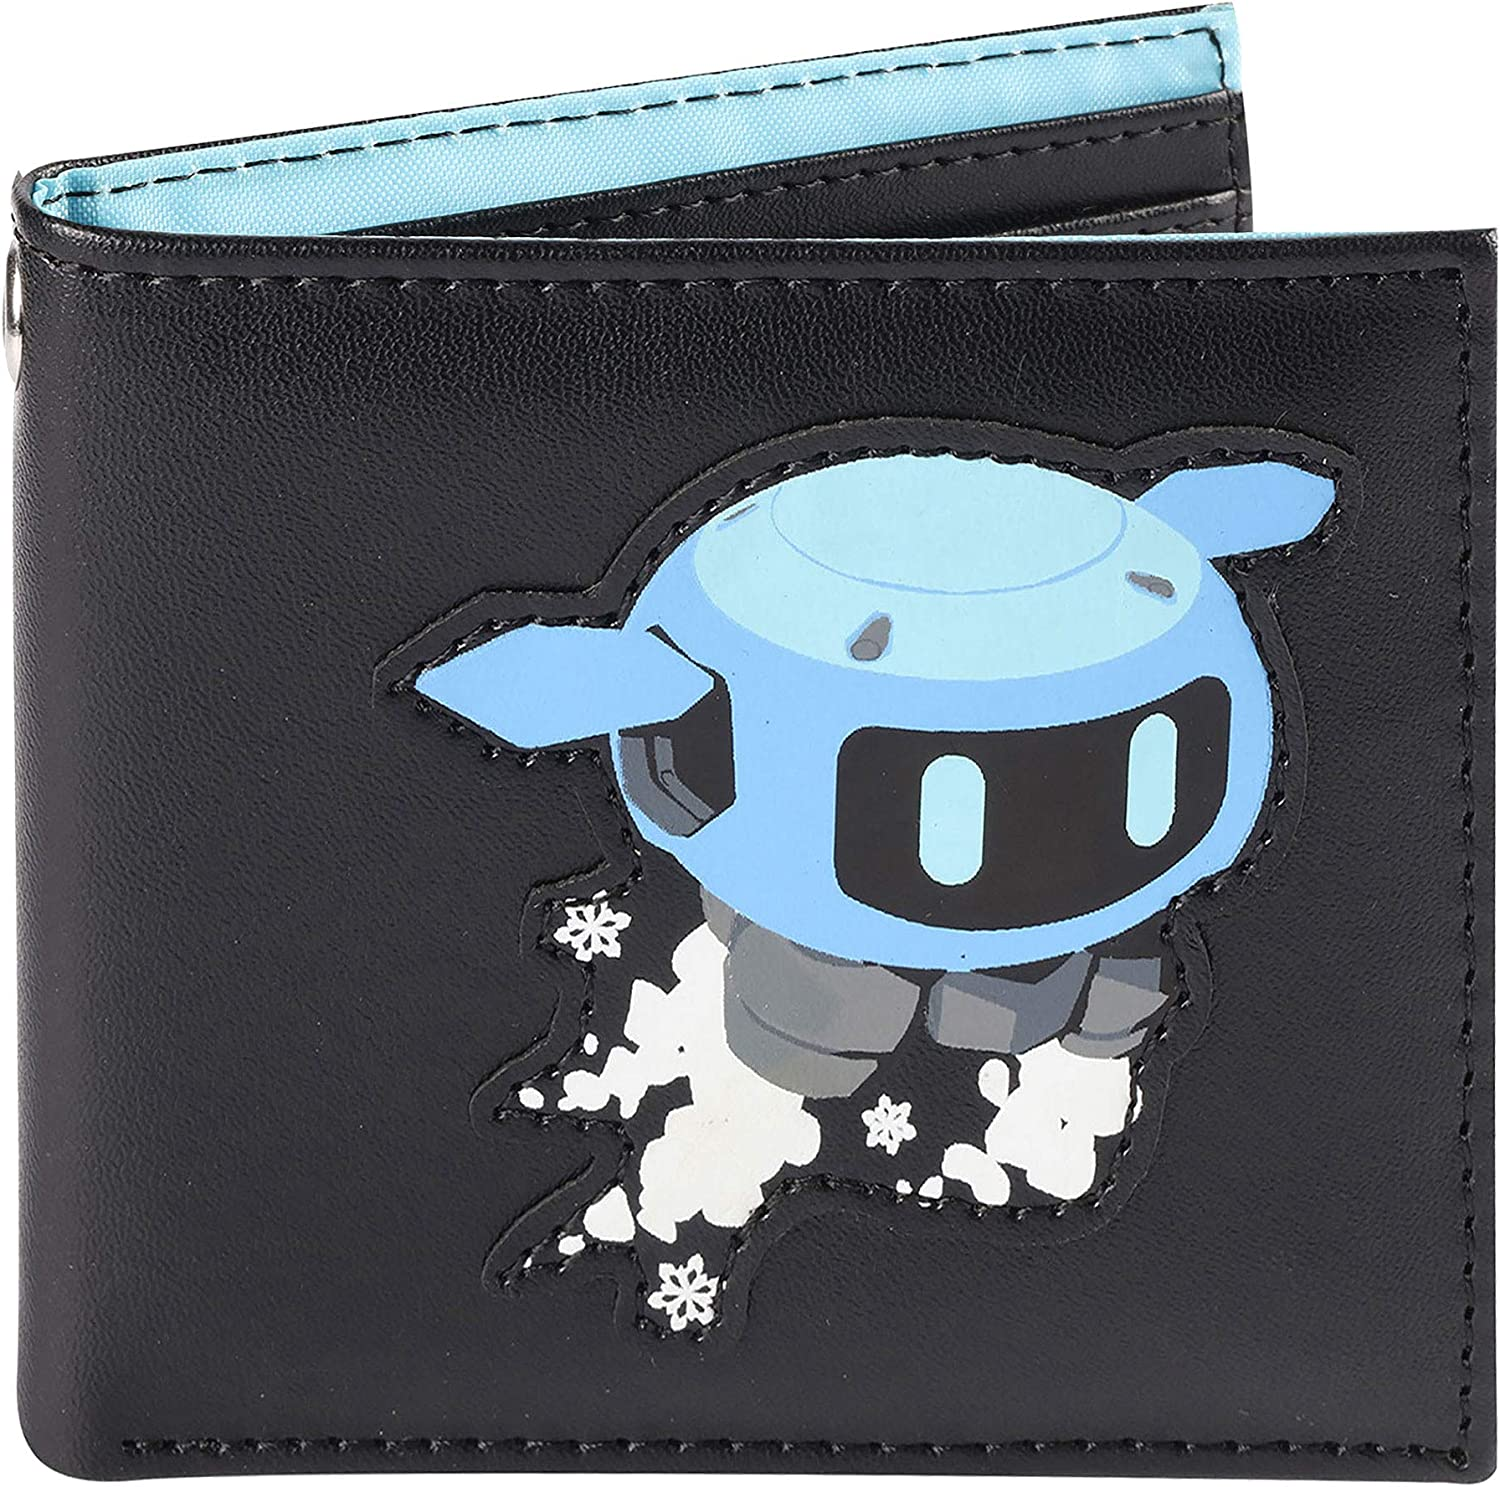 JINX Overwatch Mei Popular brand in the world 'Snowball' Graphic Wallet Black Al sold out. Bi-Fold Sta